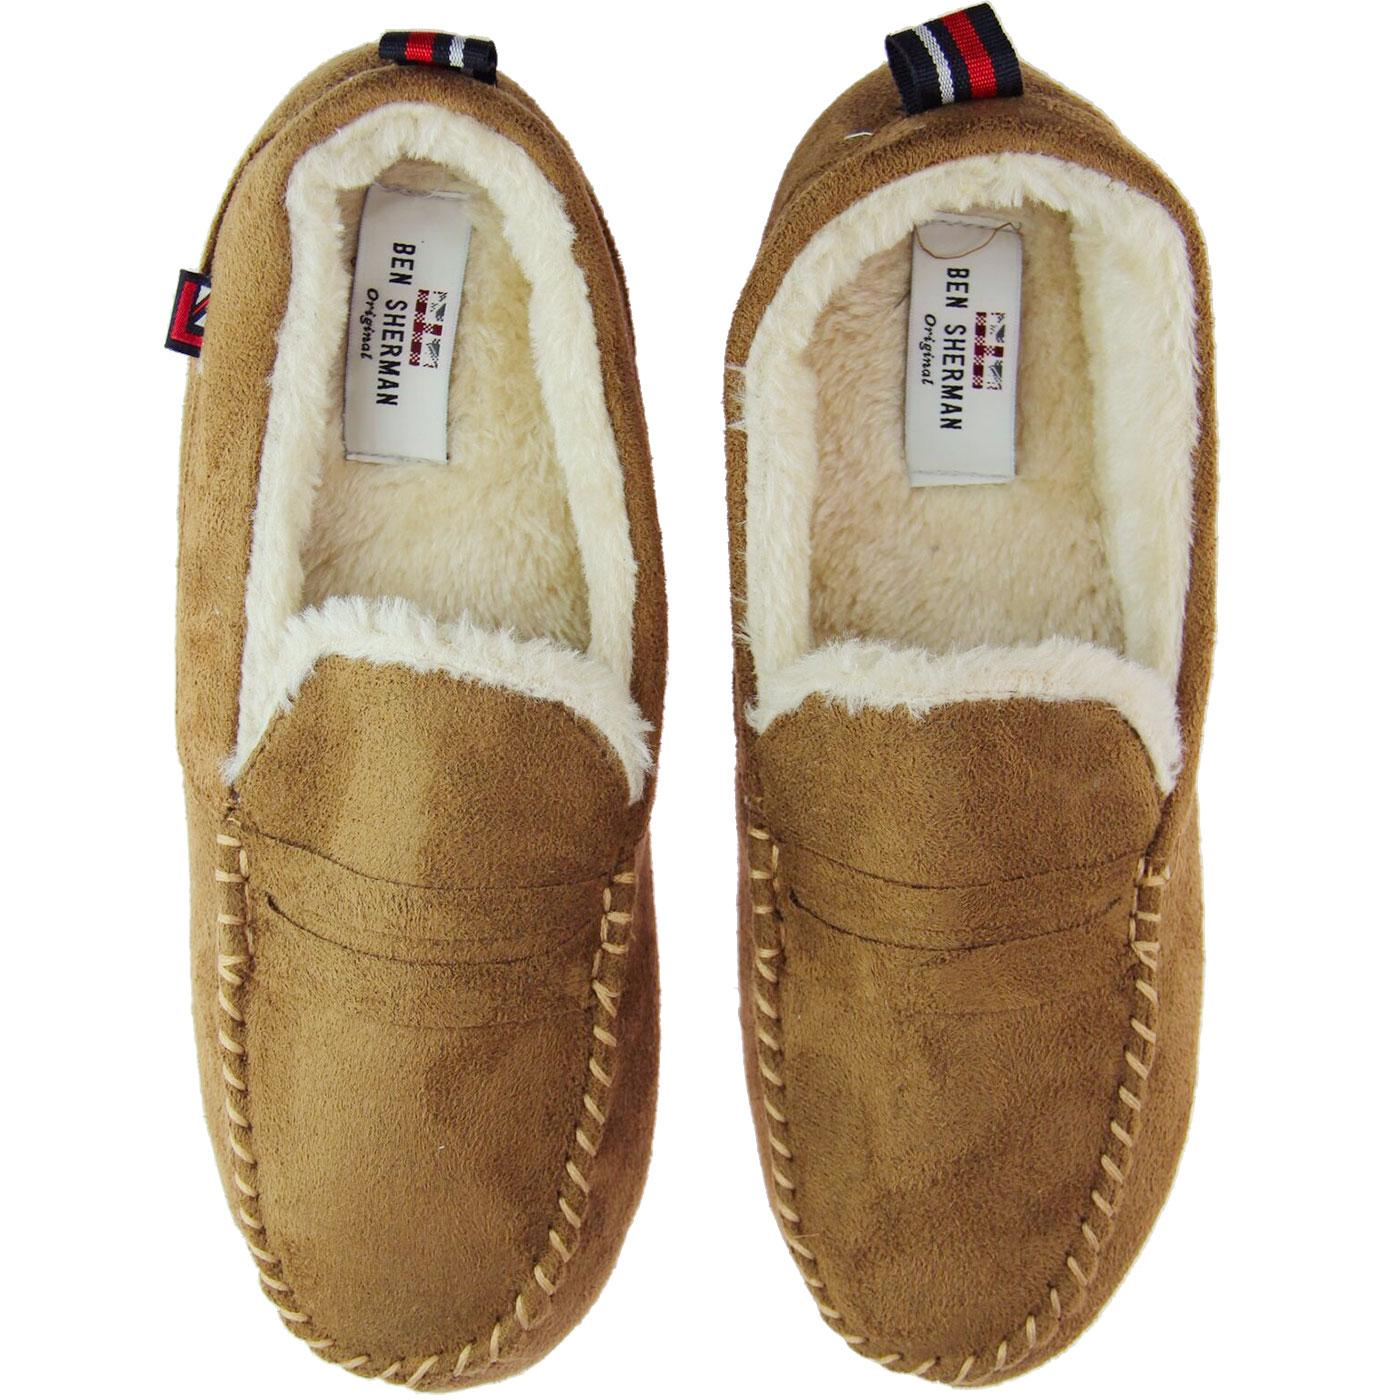 Four Seasons BEN SHERMAN Mod Moccasin Slippers TAN